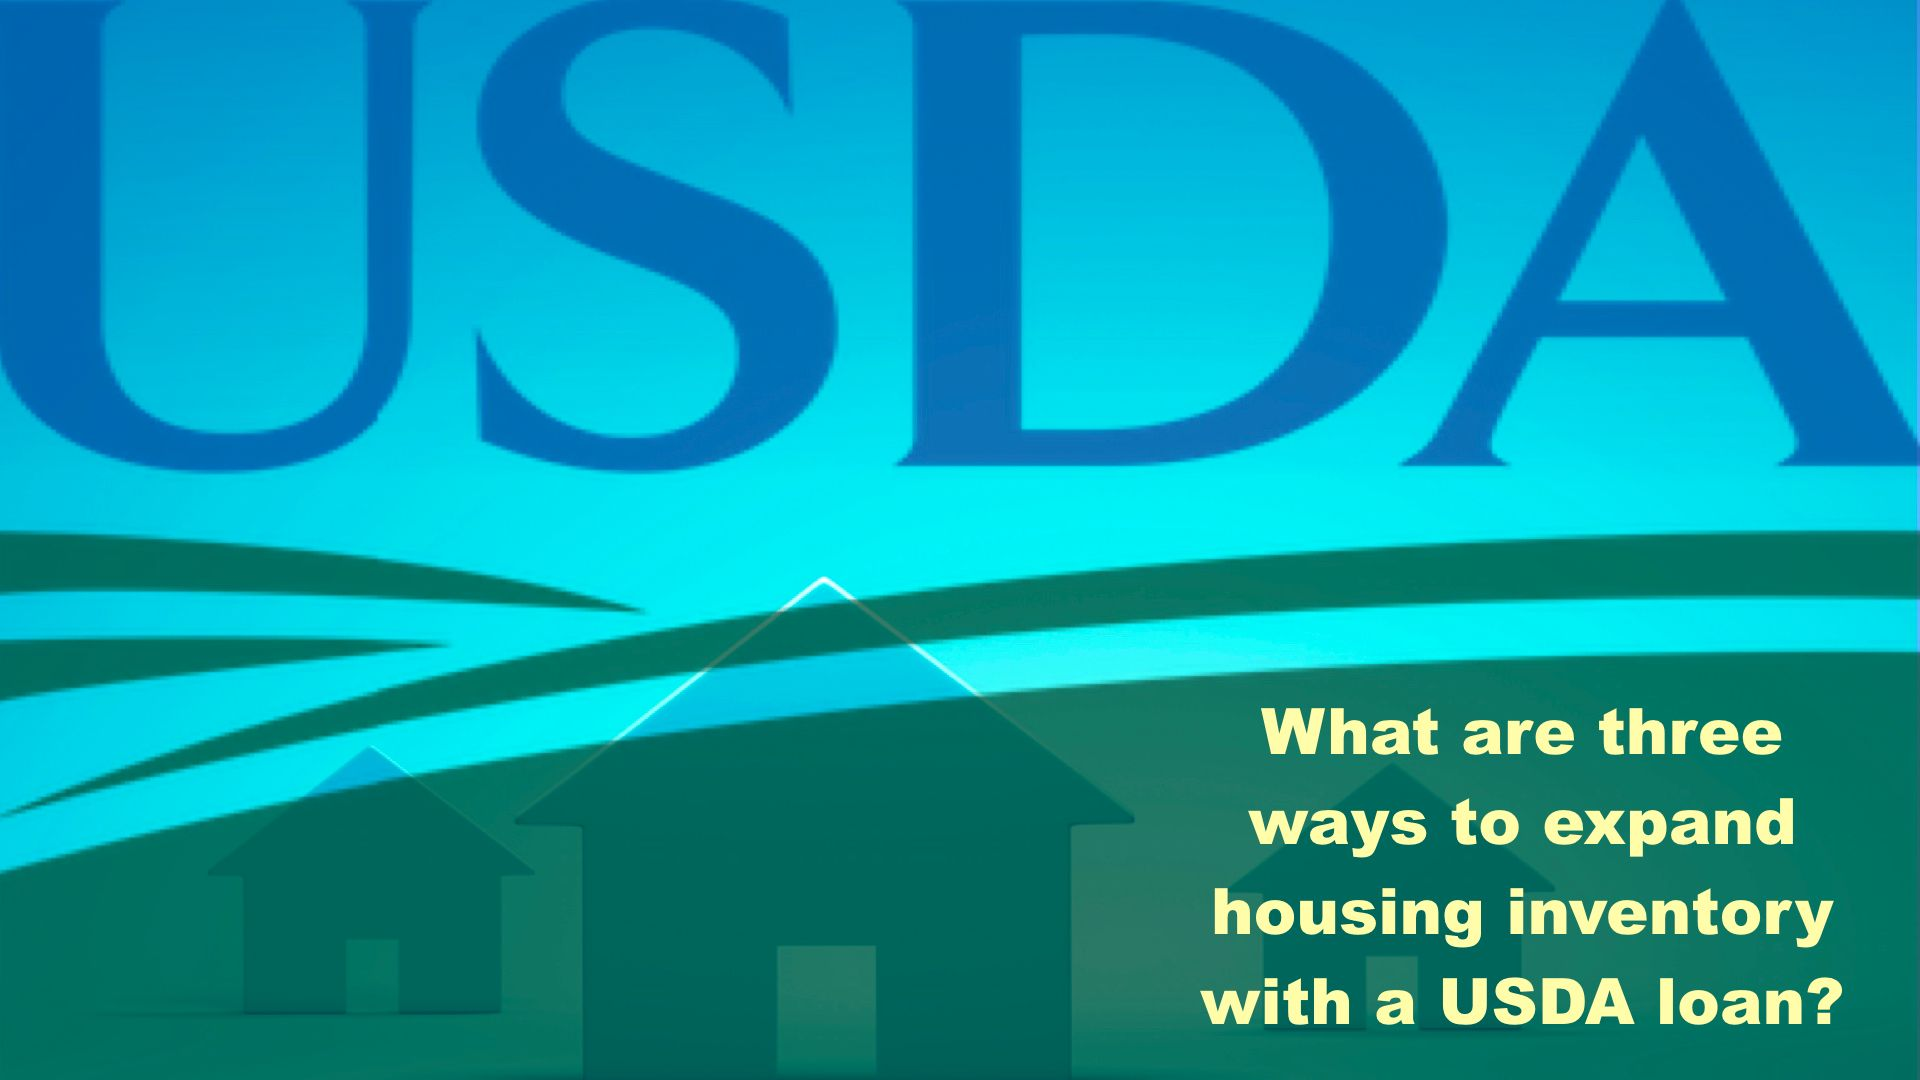 What are THREE ways to Expand Housing Inventory with a USDA loan?